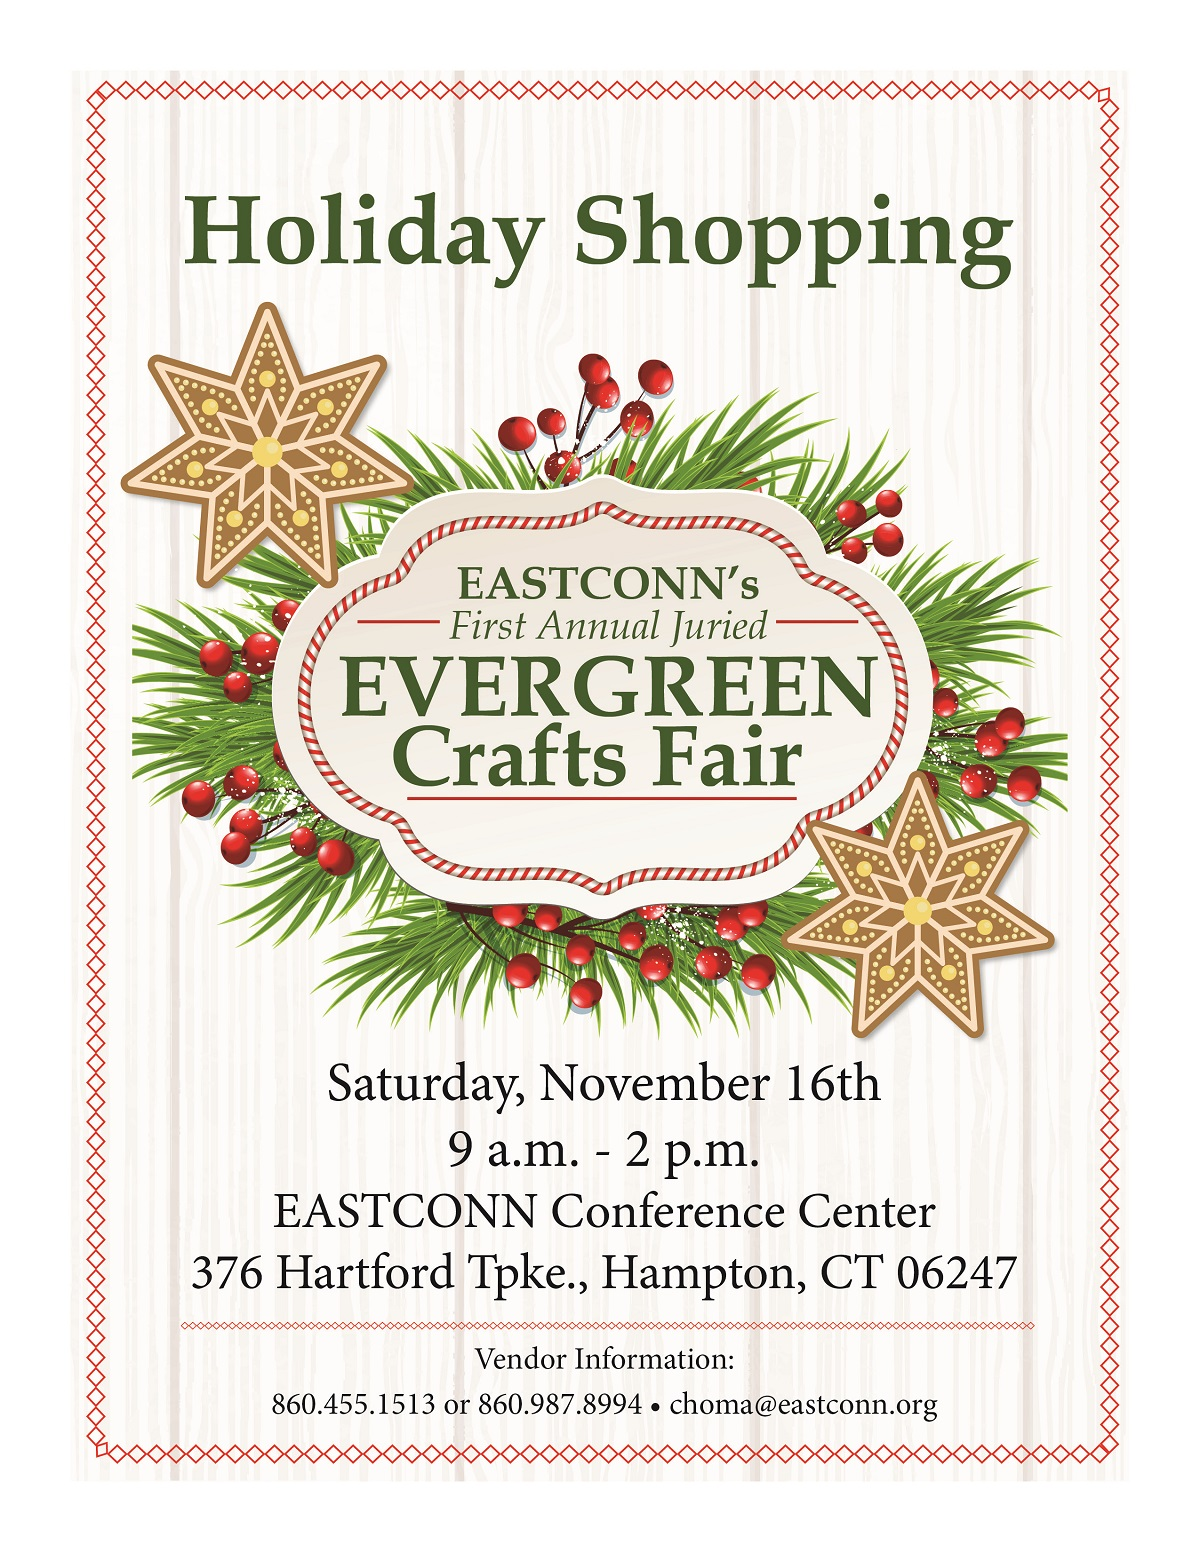 EASTCONN's first annual Evergreen Crafts Fair @ EASTCONN Conference Center